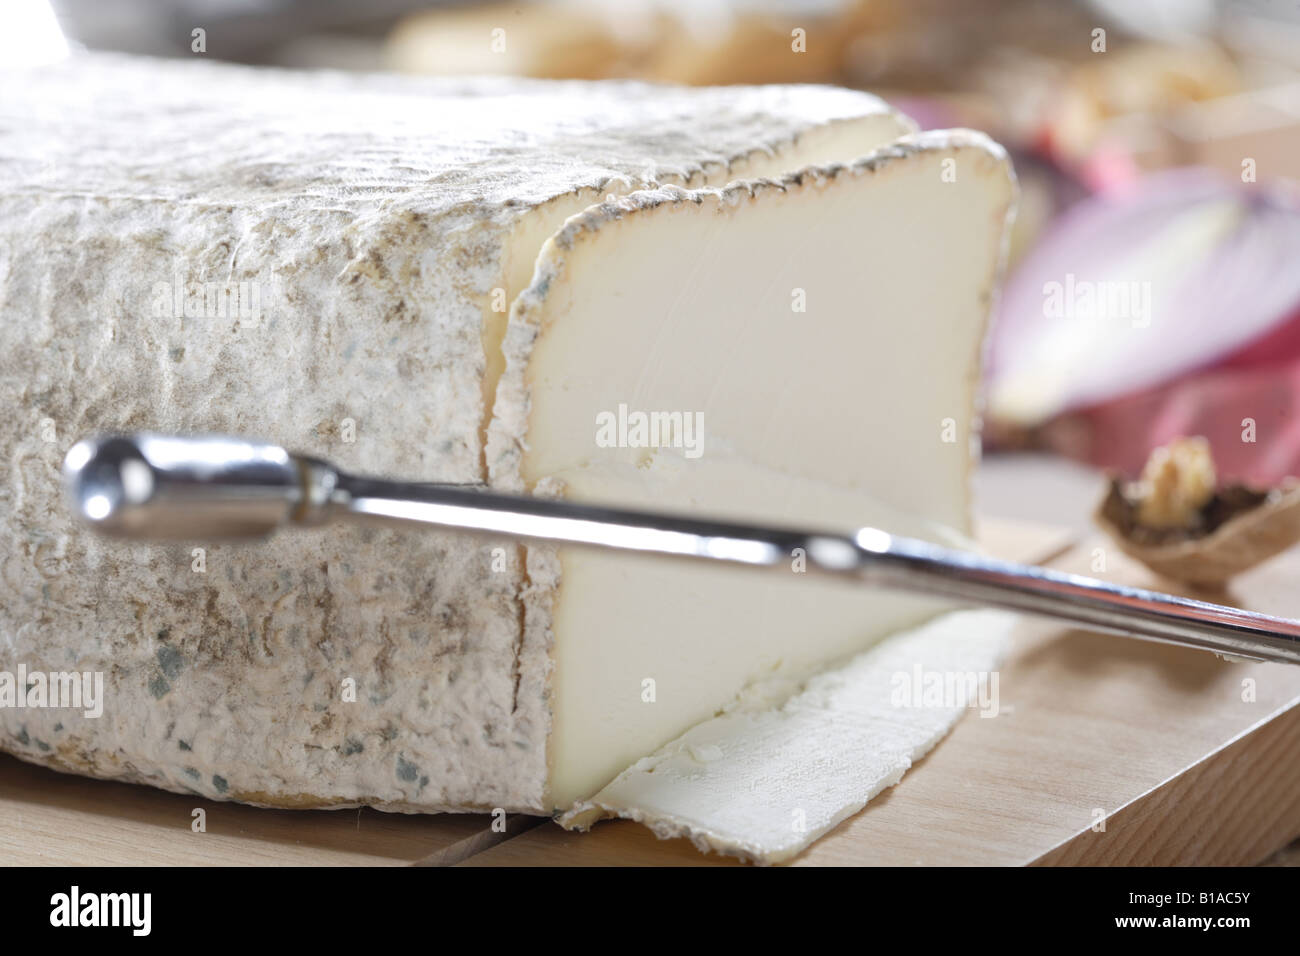 Cutting goat cheese with a cheese slicer (detail) - Stock Image